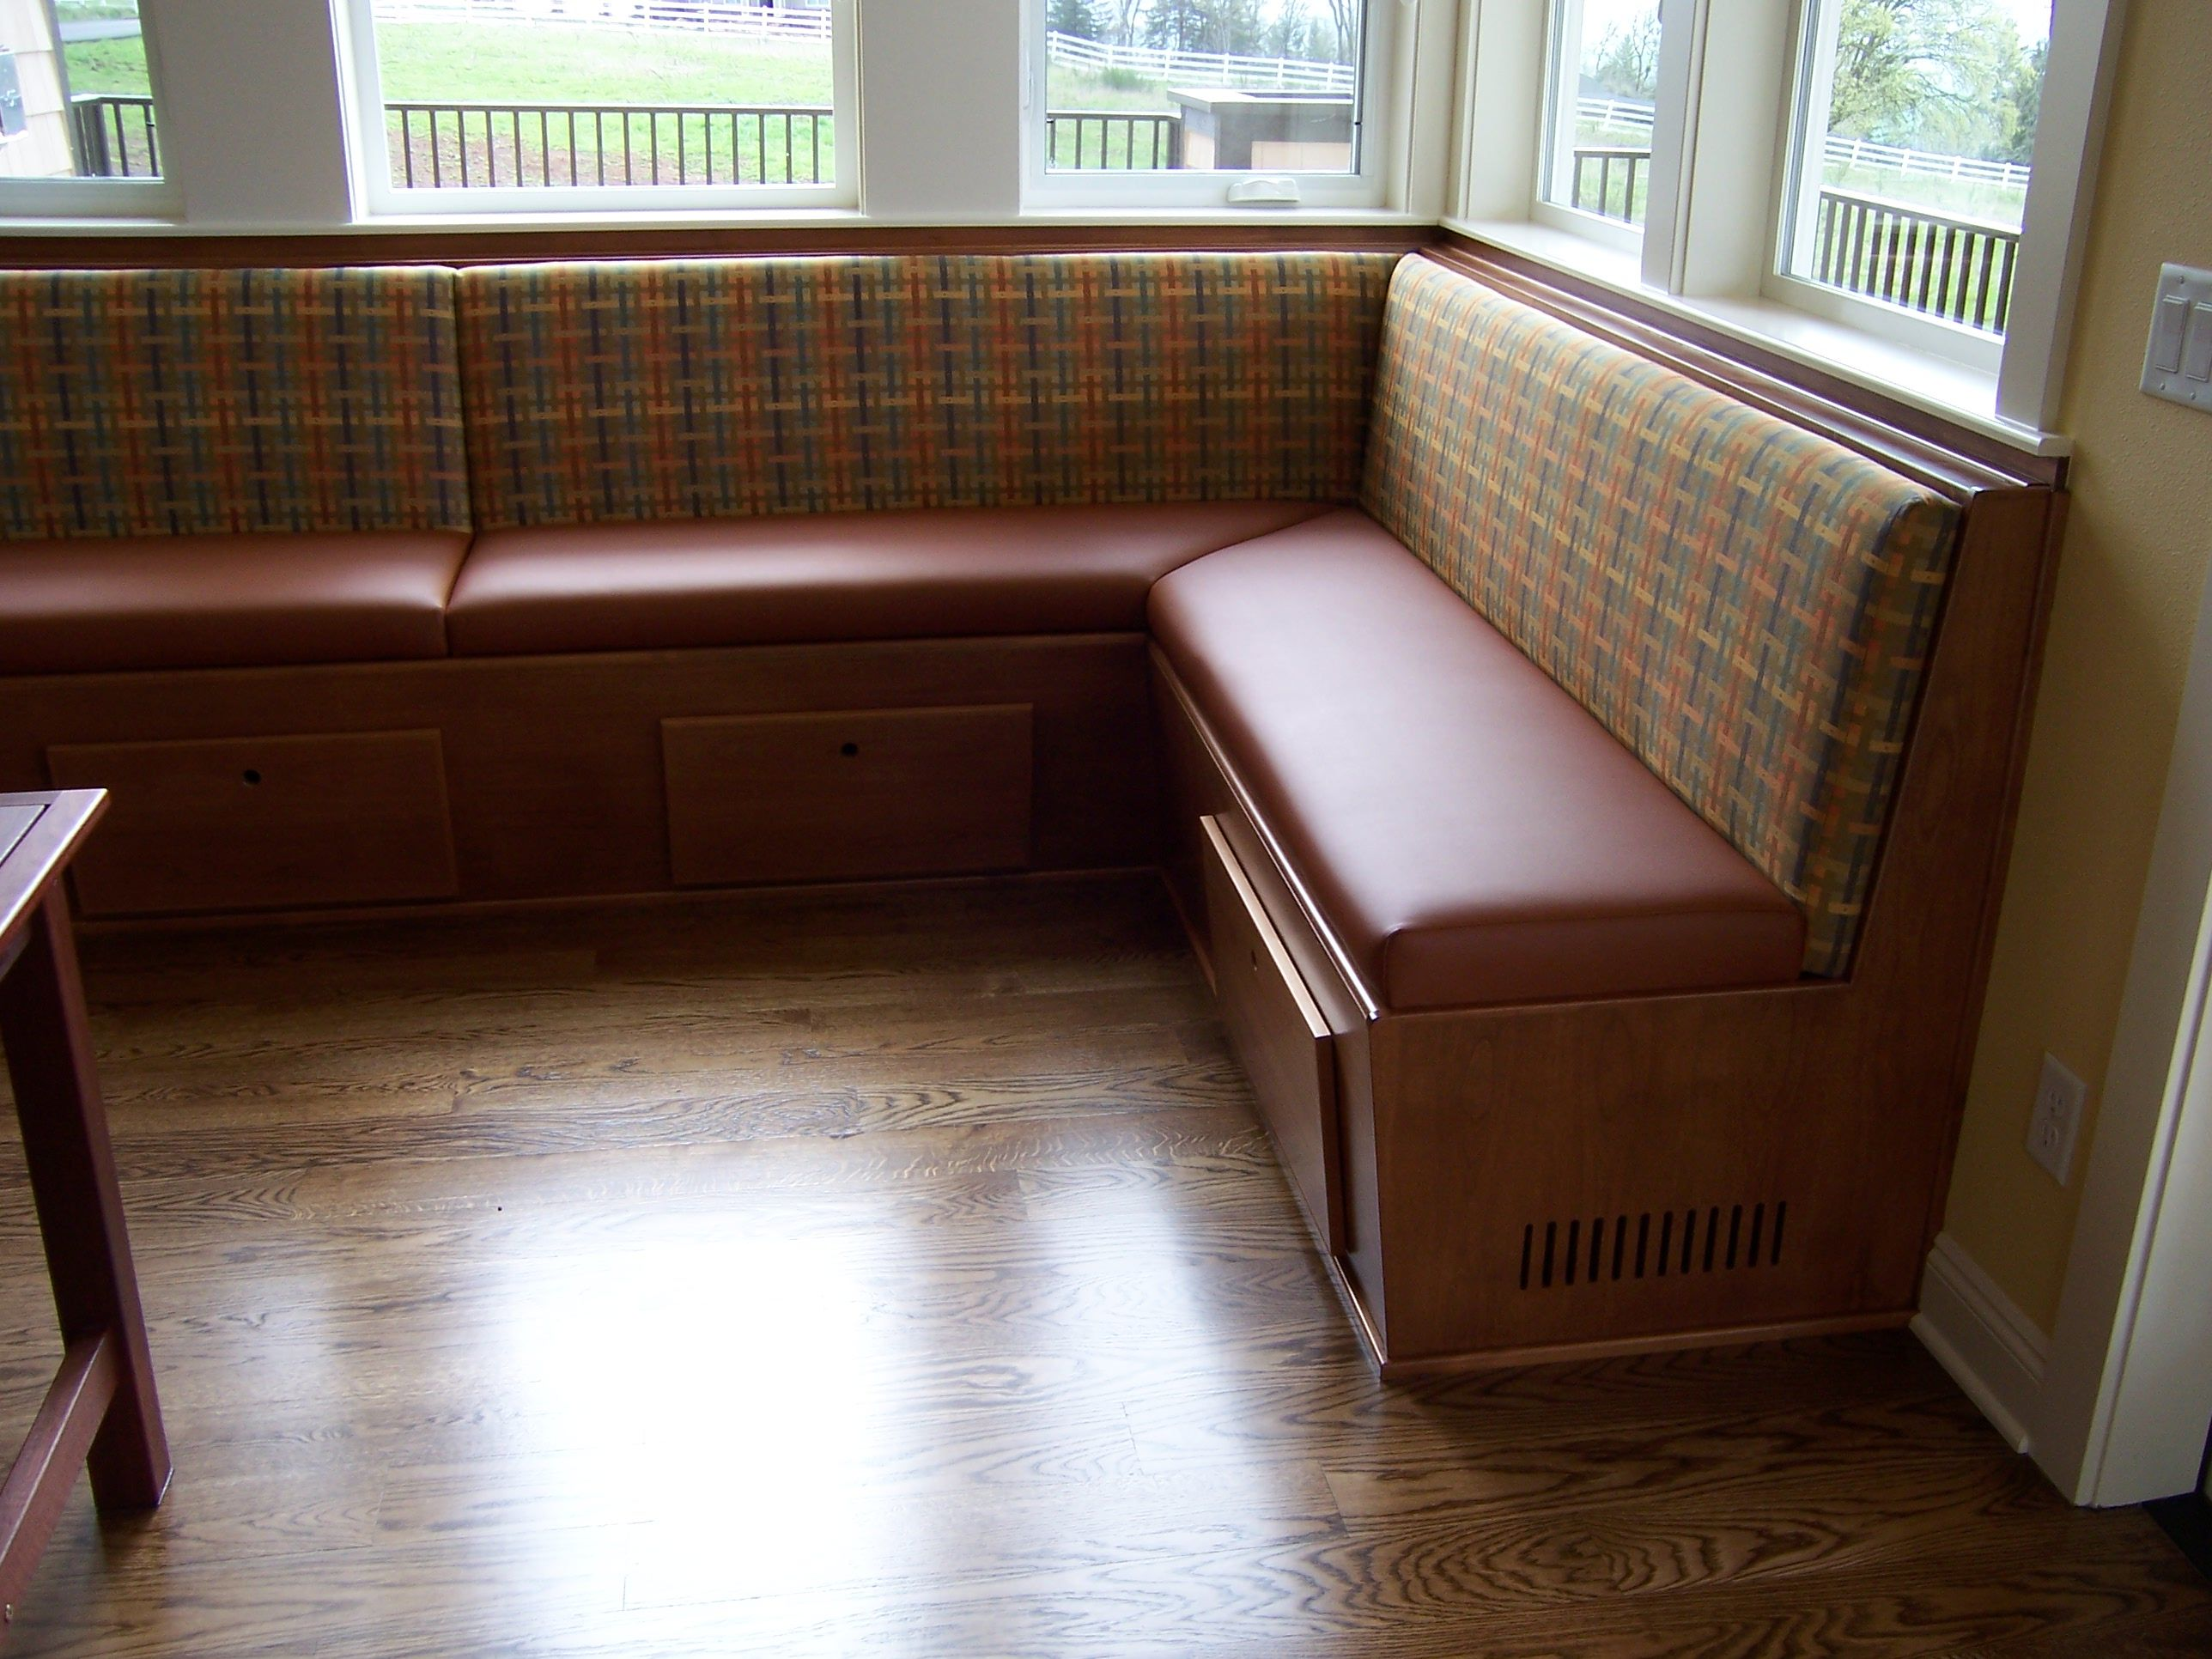 Banquette Bench Adding Coziness And Warmth To Your Kitchen Enjoyable Brown Fabric Banquette